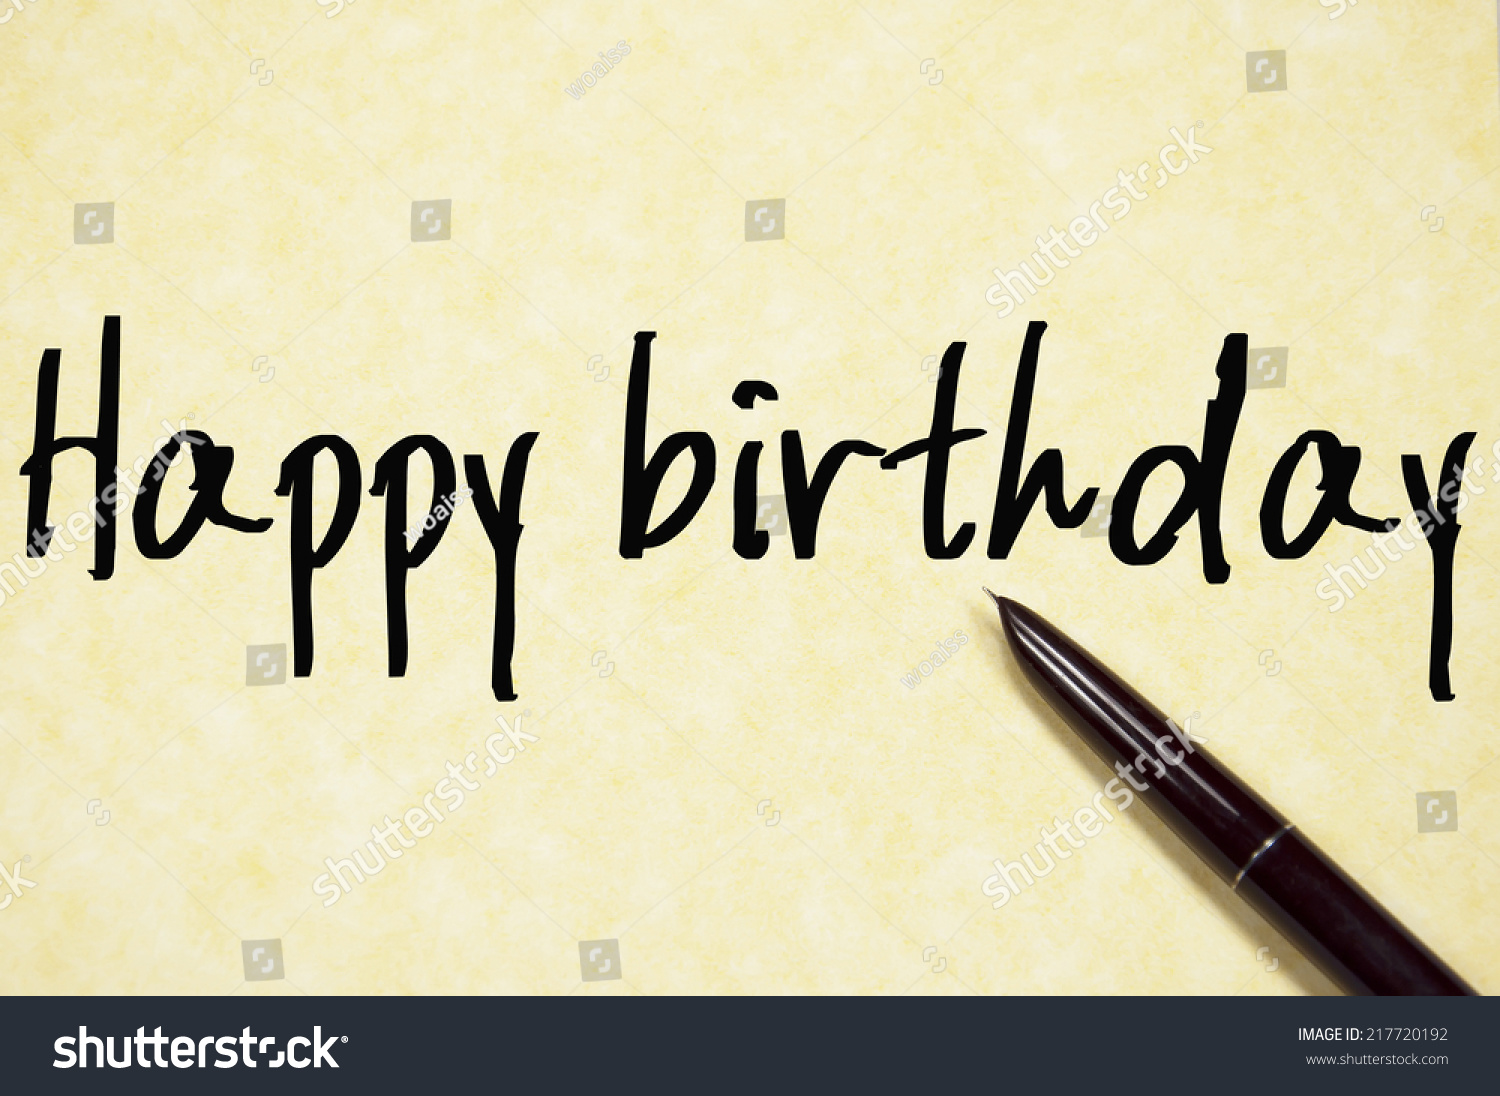 happy birthday text write on paper stock photo  happy birthday text write on paper